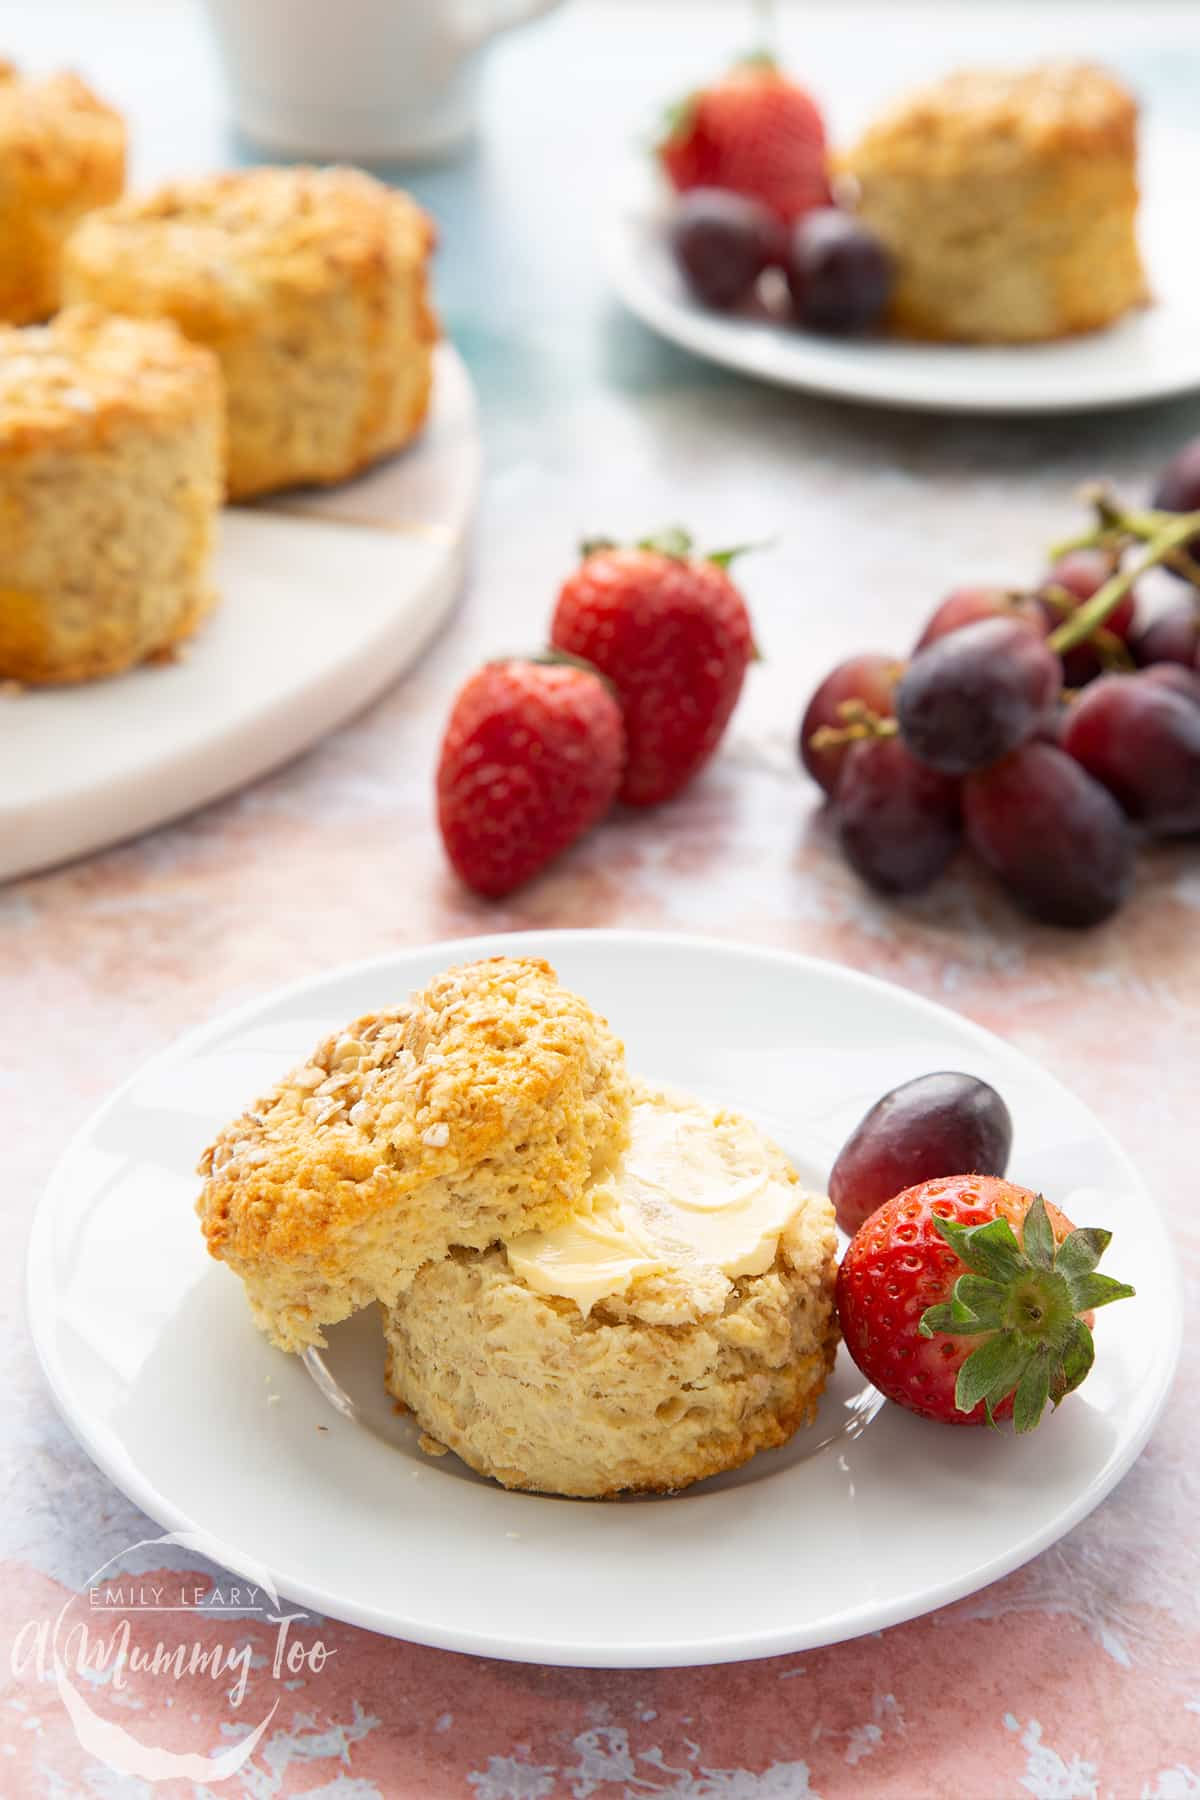 An oatmeal scone on a white plate with some fruit. The scone has been split and buttered. More oatmeal scones sit on a board in the background.